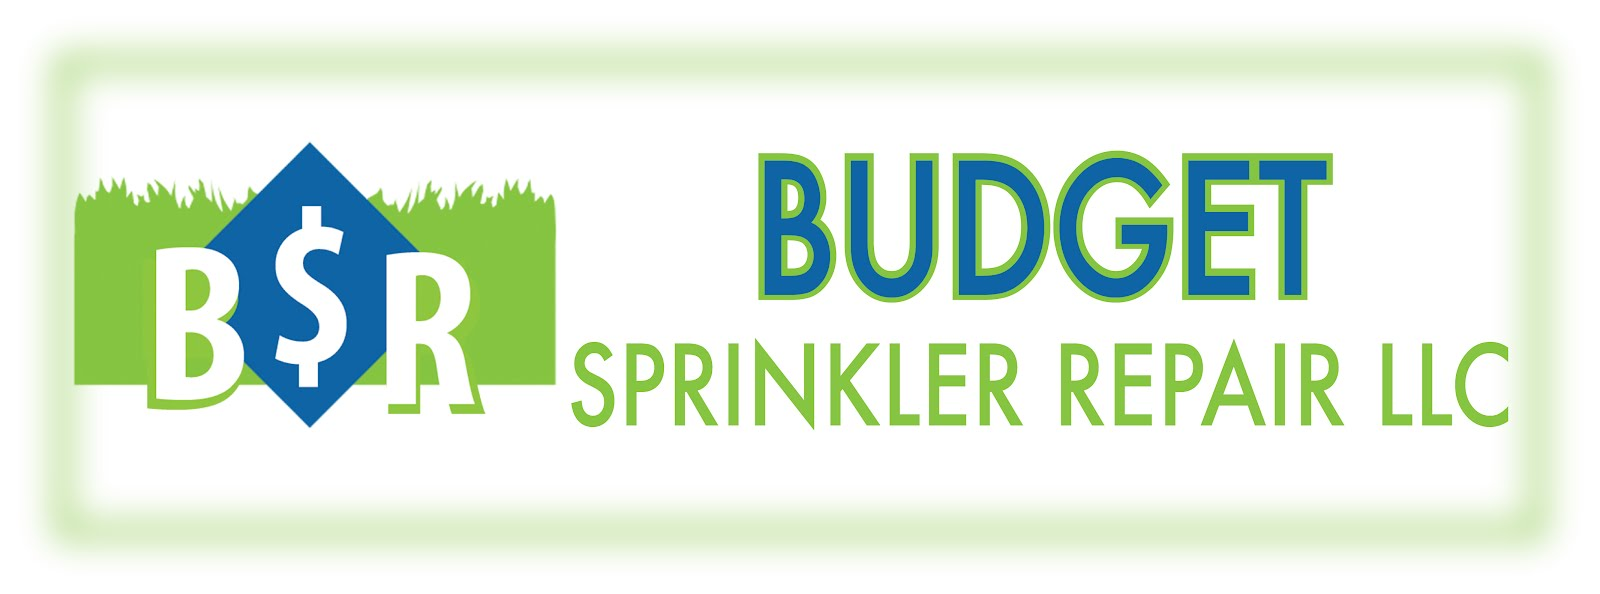 Budget Sprinkler Repair LLC (954)729-6054- Broward County Sprinkler Repairs/Coral Springs Sprinklers